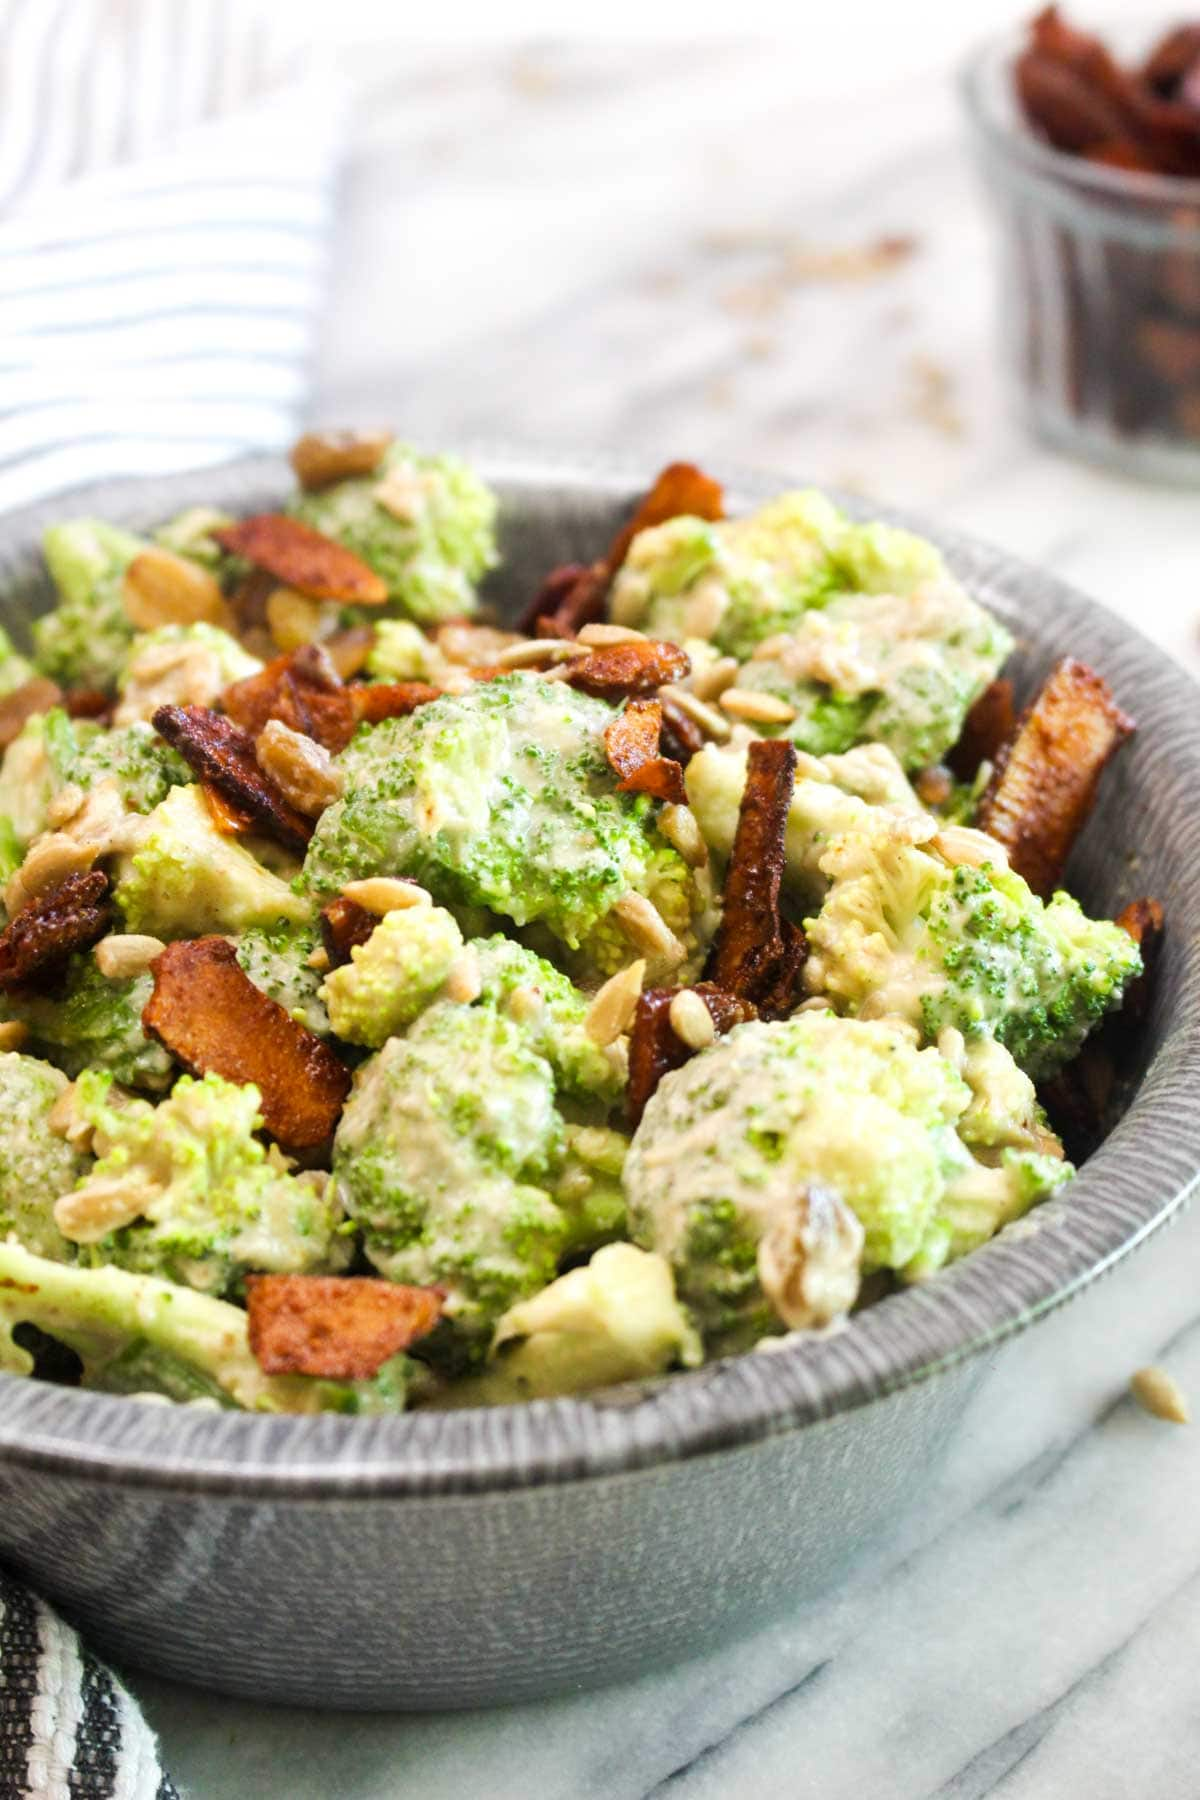 This Healthy Vegan Broccoli Salad is an easy recipe that is BIG on flavor. Broccoli is coated in a sweet and creamy dressing and jazzed up with smokey coconut bacon, toasty seeds, and sweet raisins. | CatchingSeeds.com